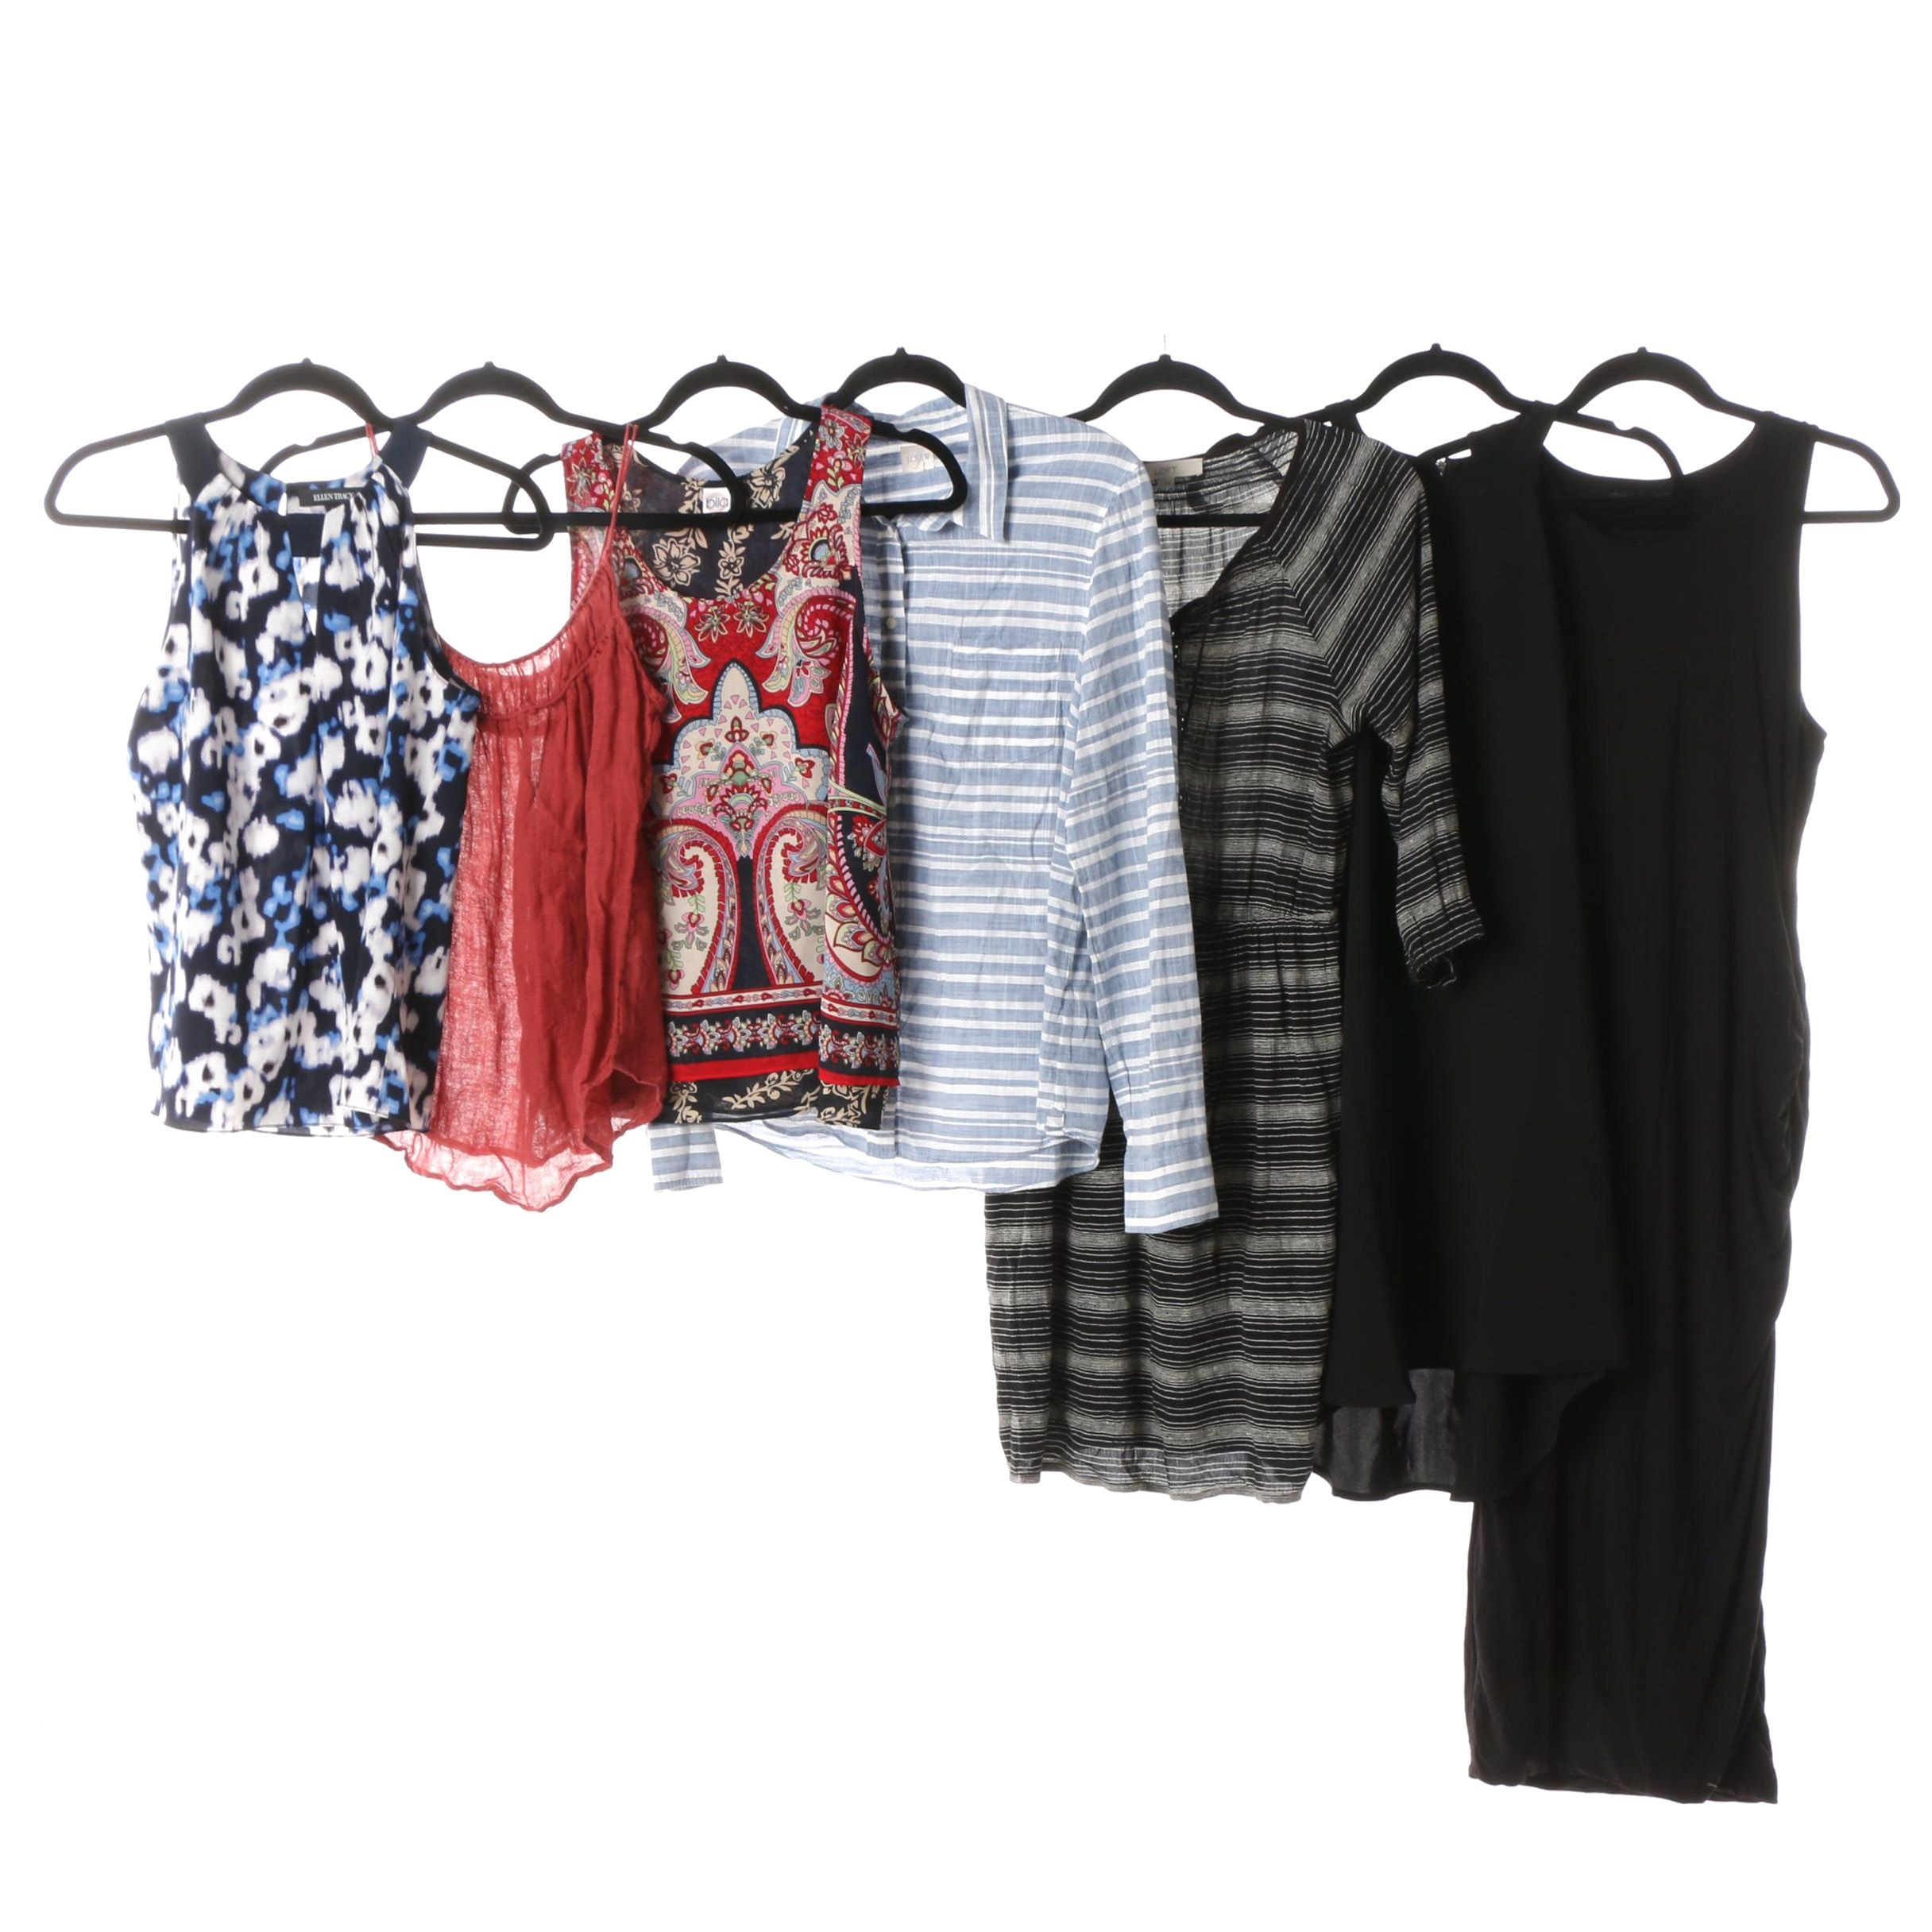 Dresses and Tops including Cynthia Rowley, Ellen Tracy and Banana Republic